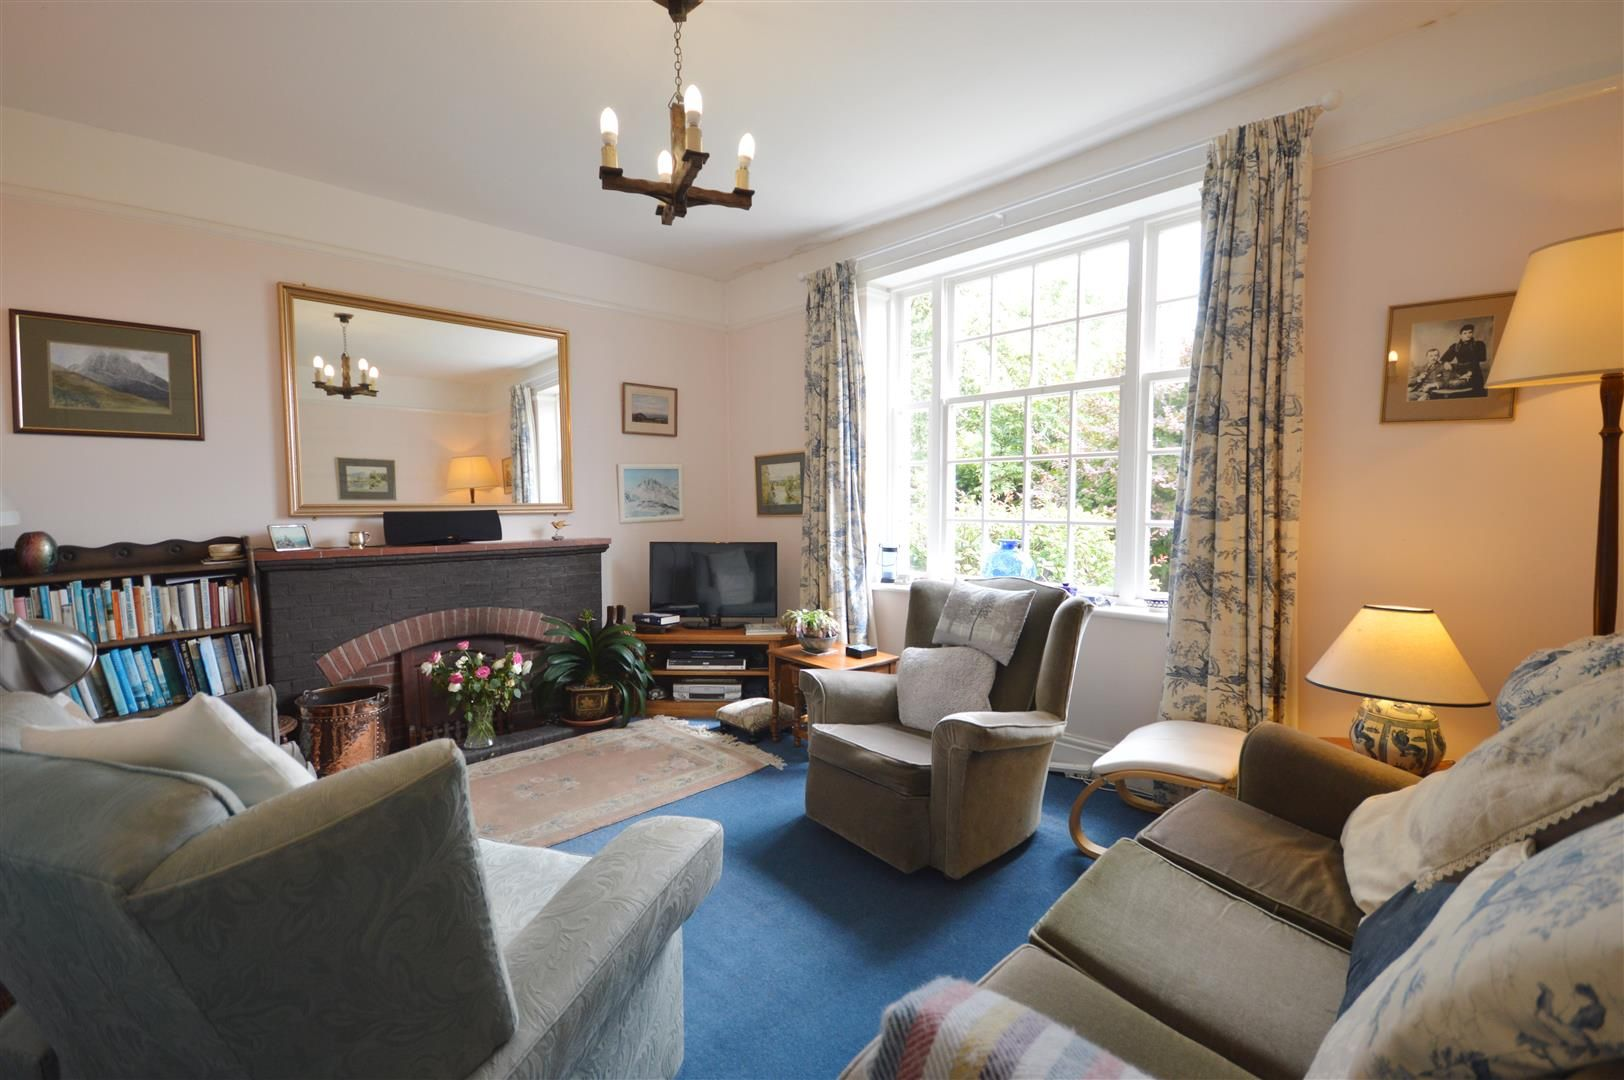 4 bed house for sale in Monkland  - Property Image 3